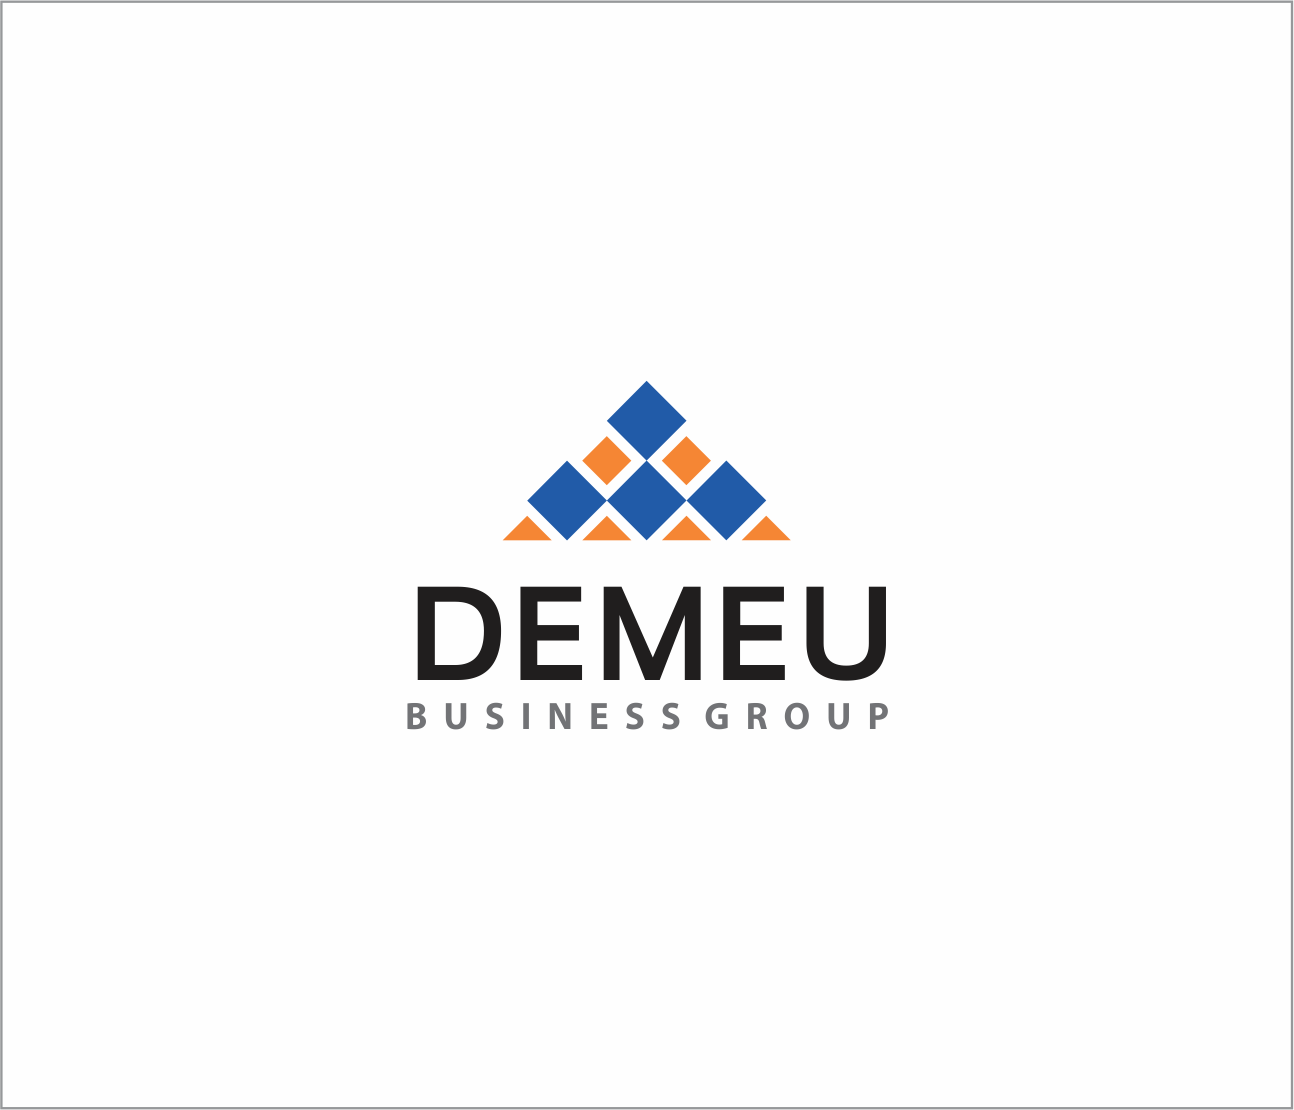 Logo Design by Armada Jamaluddin - Entry No. 121 in the Logo Design Contest Captivating Logo Design for DEMEU Business Group.